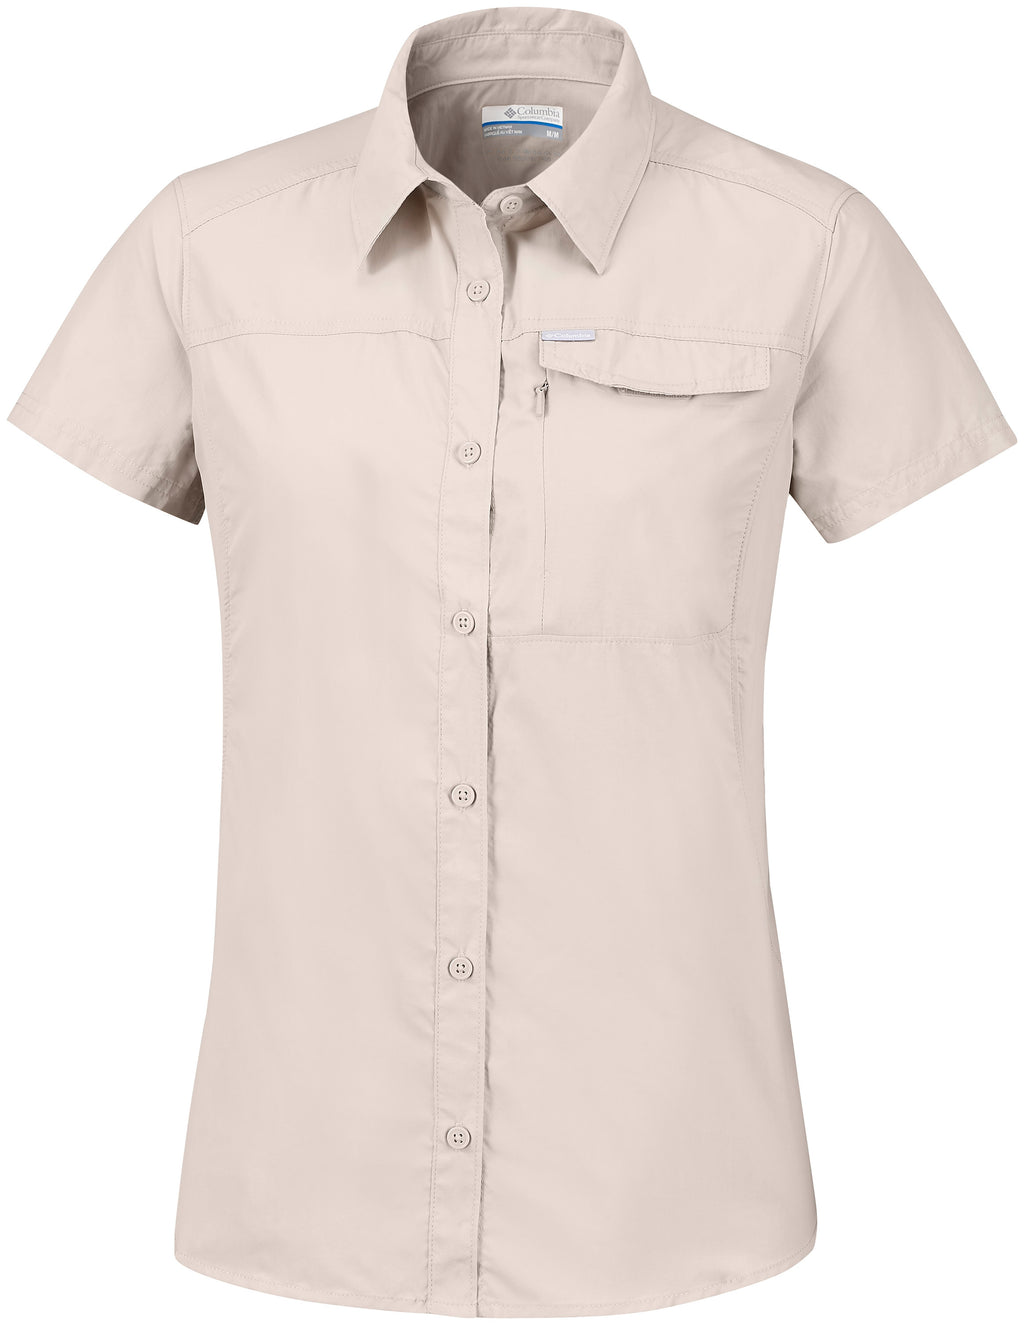 Columbia Women's Silver Ridge 2.0 SS promotional Shirt